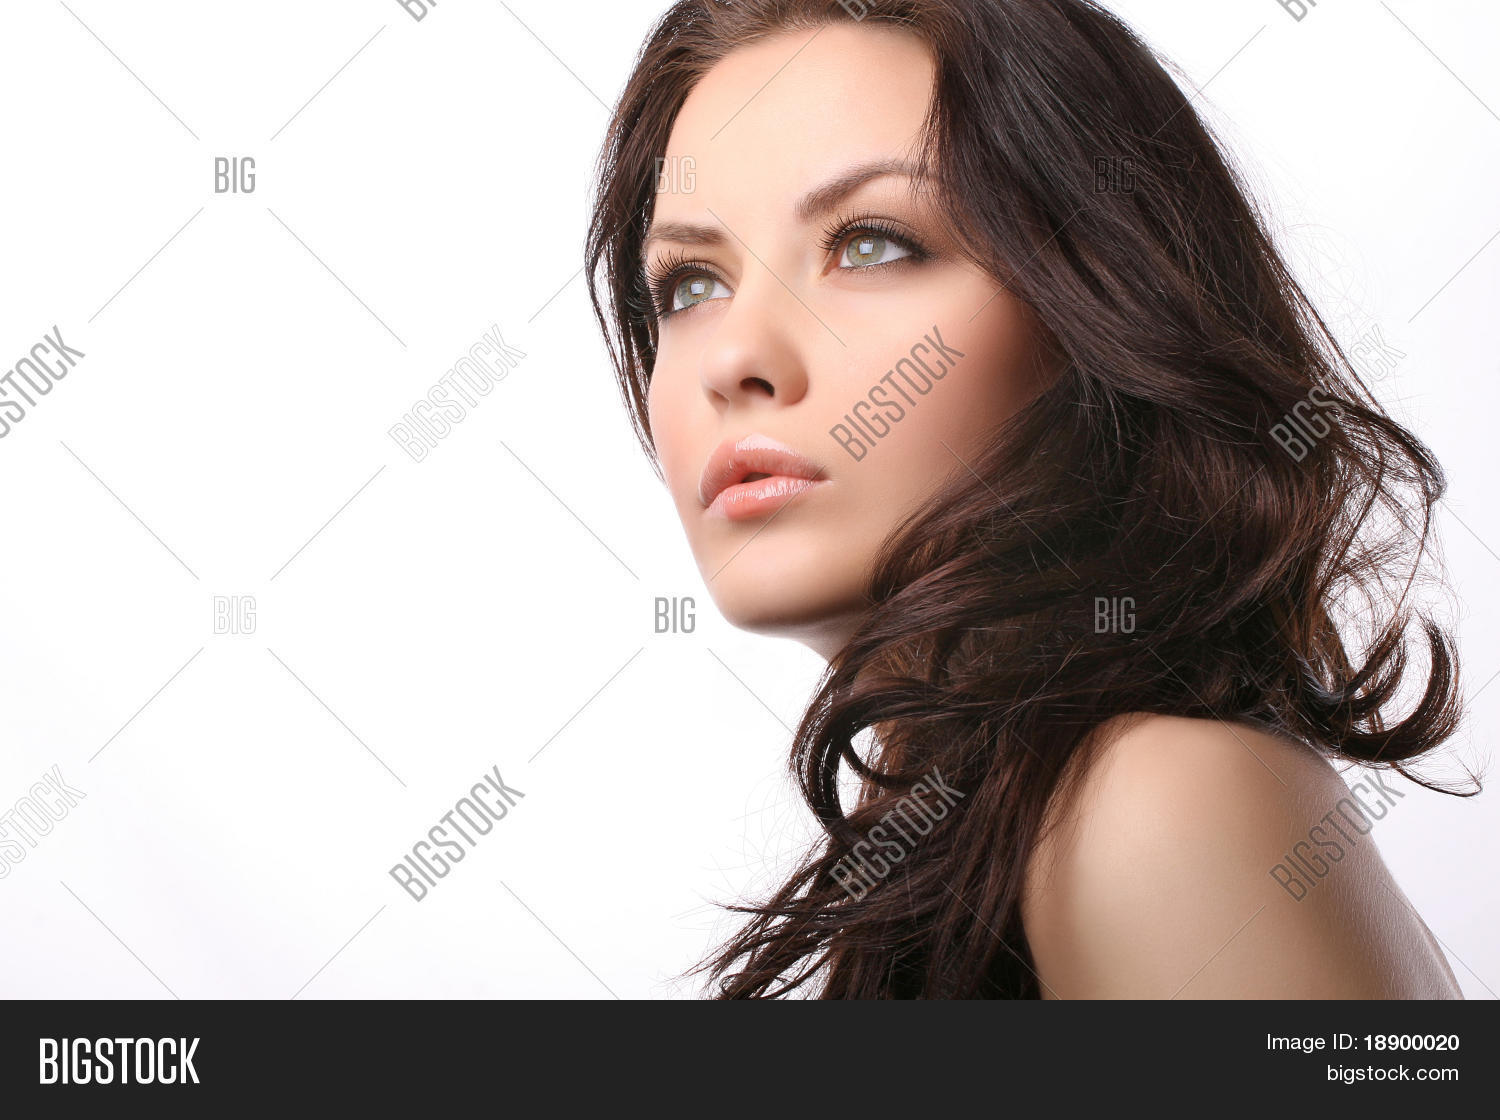 woman looking away